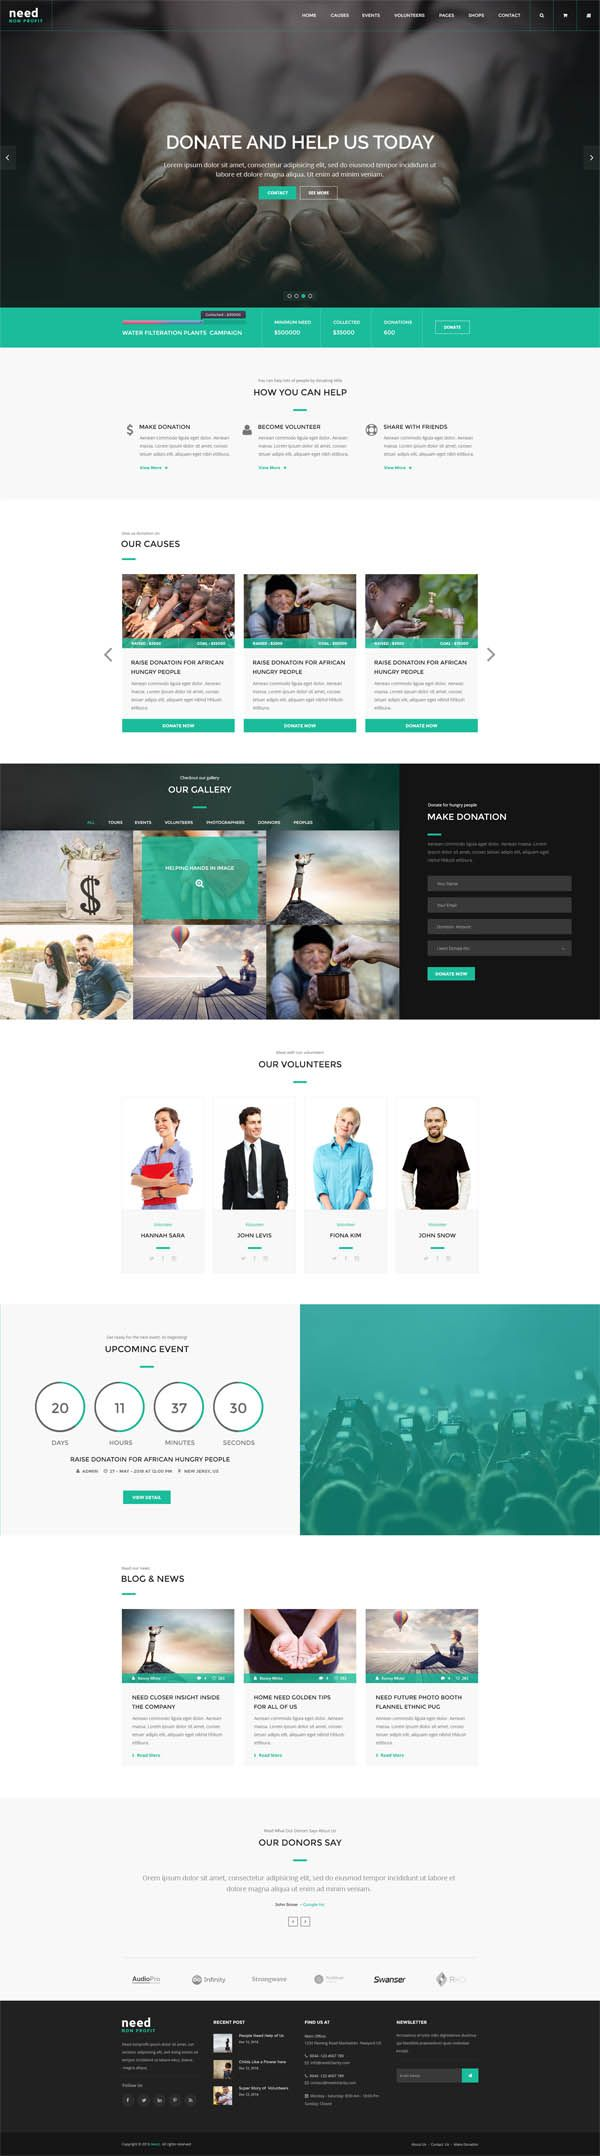 Need - Nonprofit Charity Donation HTML Template | PSD Templates ...